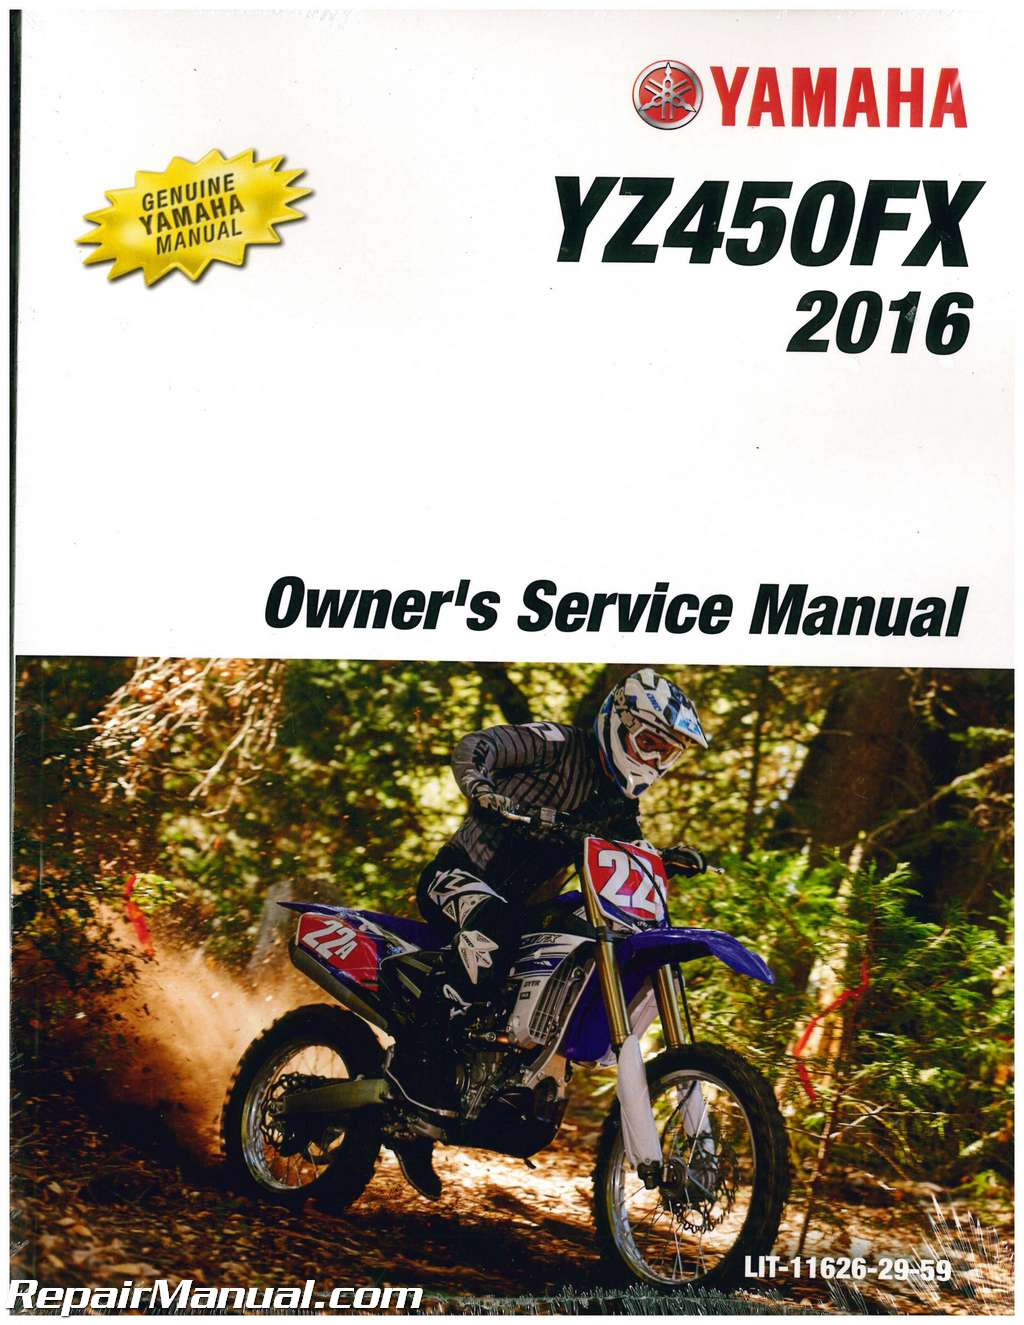 2016 yamaha yz450fx motorcycle owners service manual rh repairmanual com owner's manual motorcycle Manual Shift Motorcycles